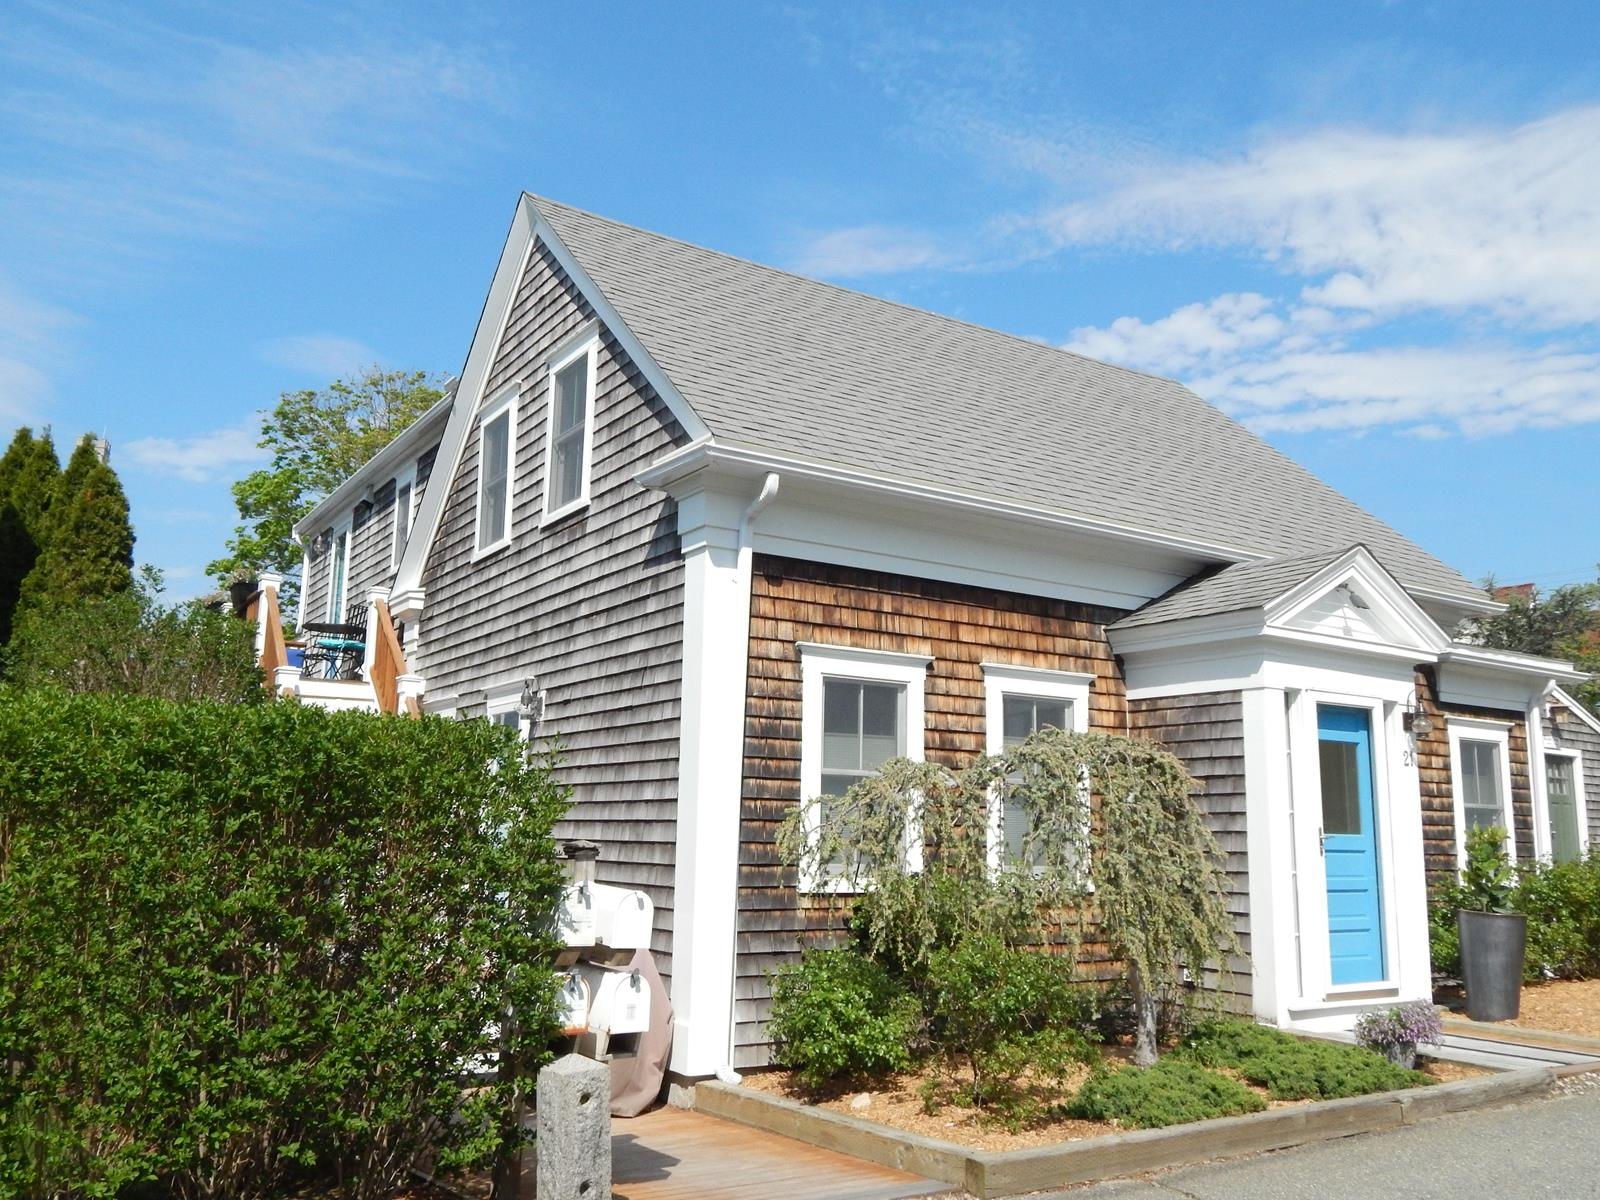 Condominium for Sale at West End 3 Bedroom Condominium 21 Court Street, Unit 2 Provincetown, Massachusetts, 02657 United States